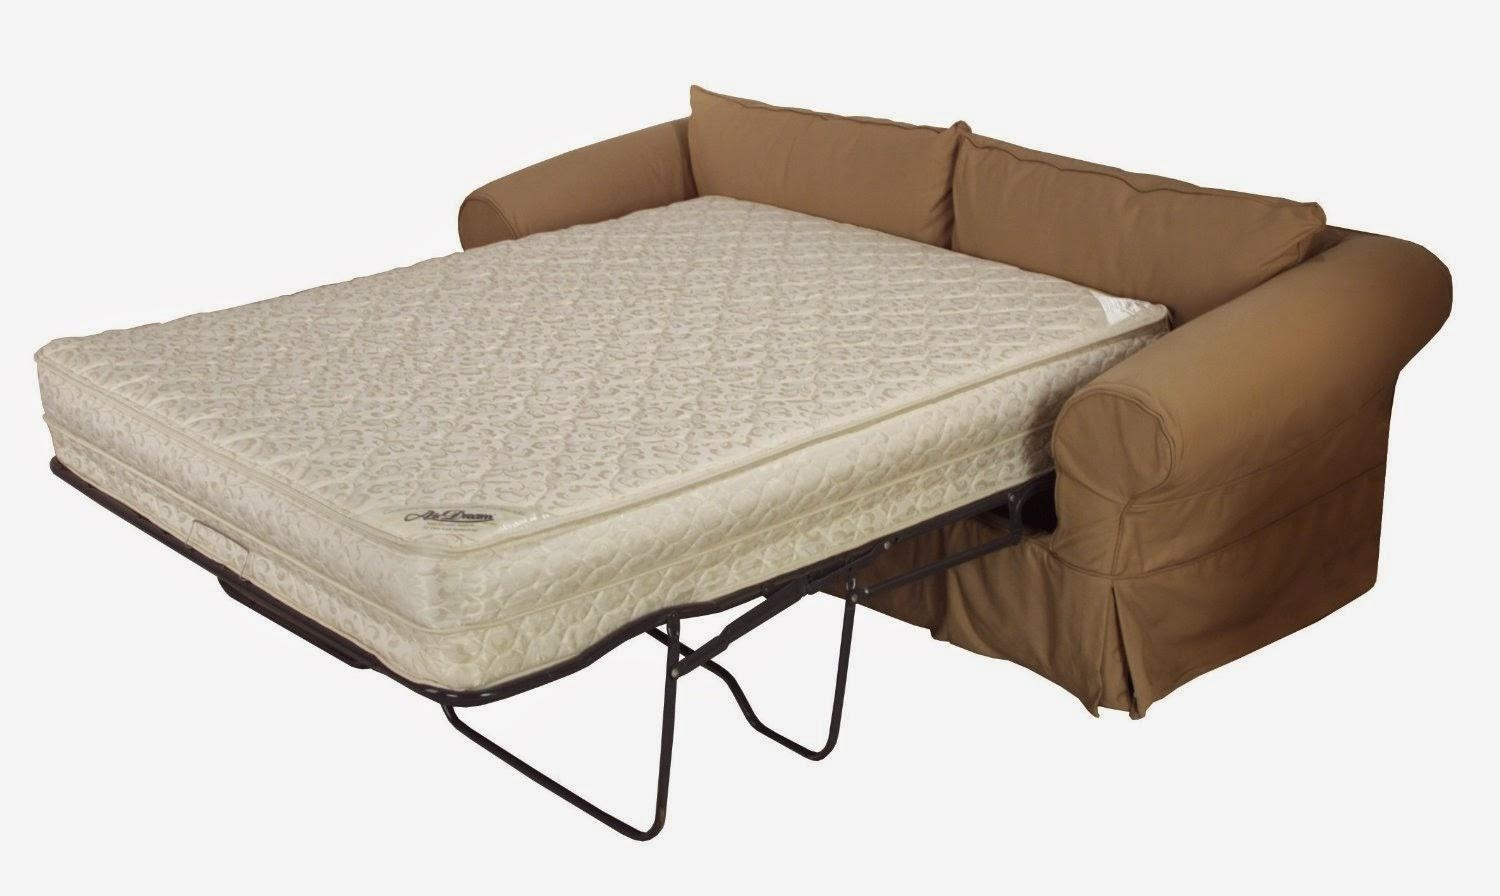 Queen Sofa Bed Dimensions Pertaining To Sleep Number Sofa Beds (View 15 of 20)